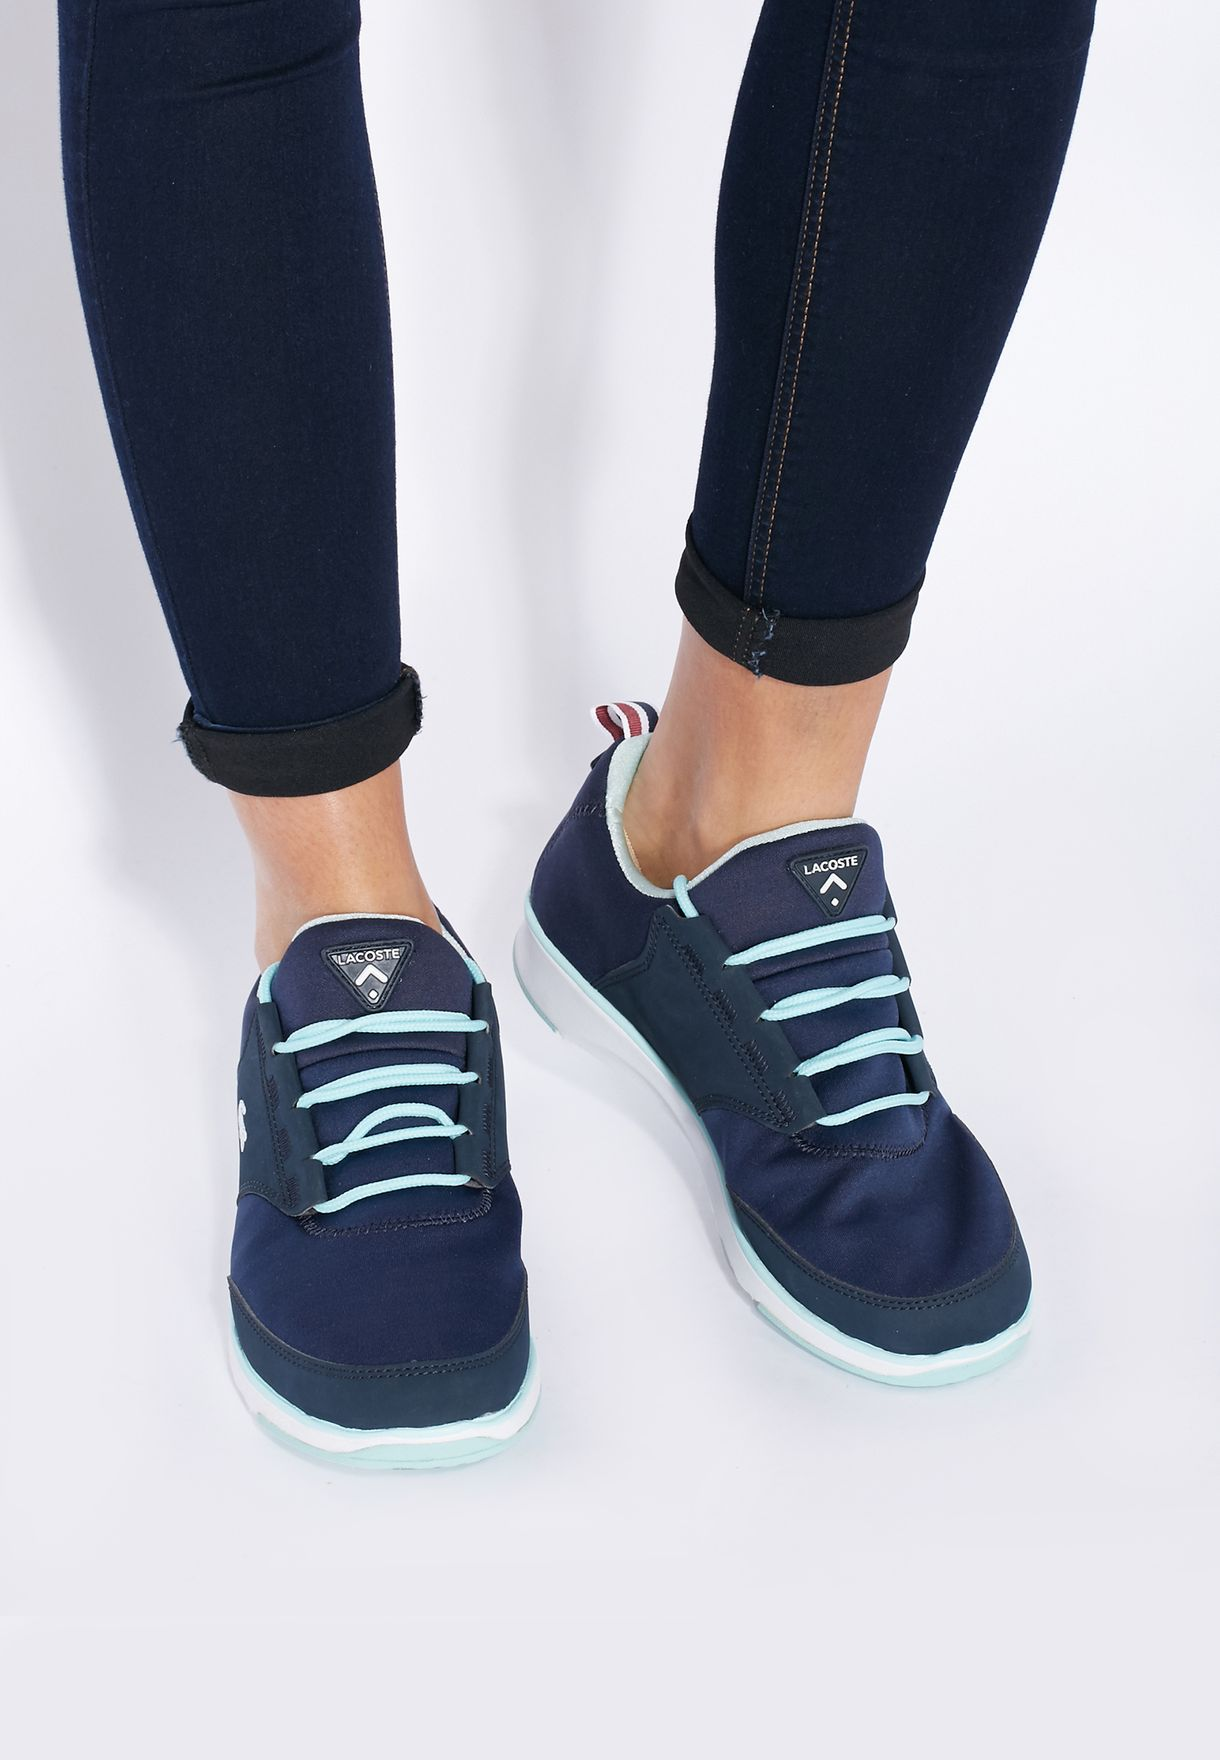 d9693ded2 Shop Lacoste blue L. Ight TRC Sneakers 30SPW0006-DB4 for Women in ...